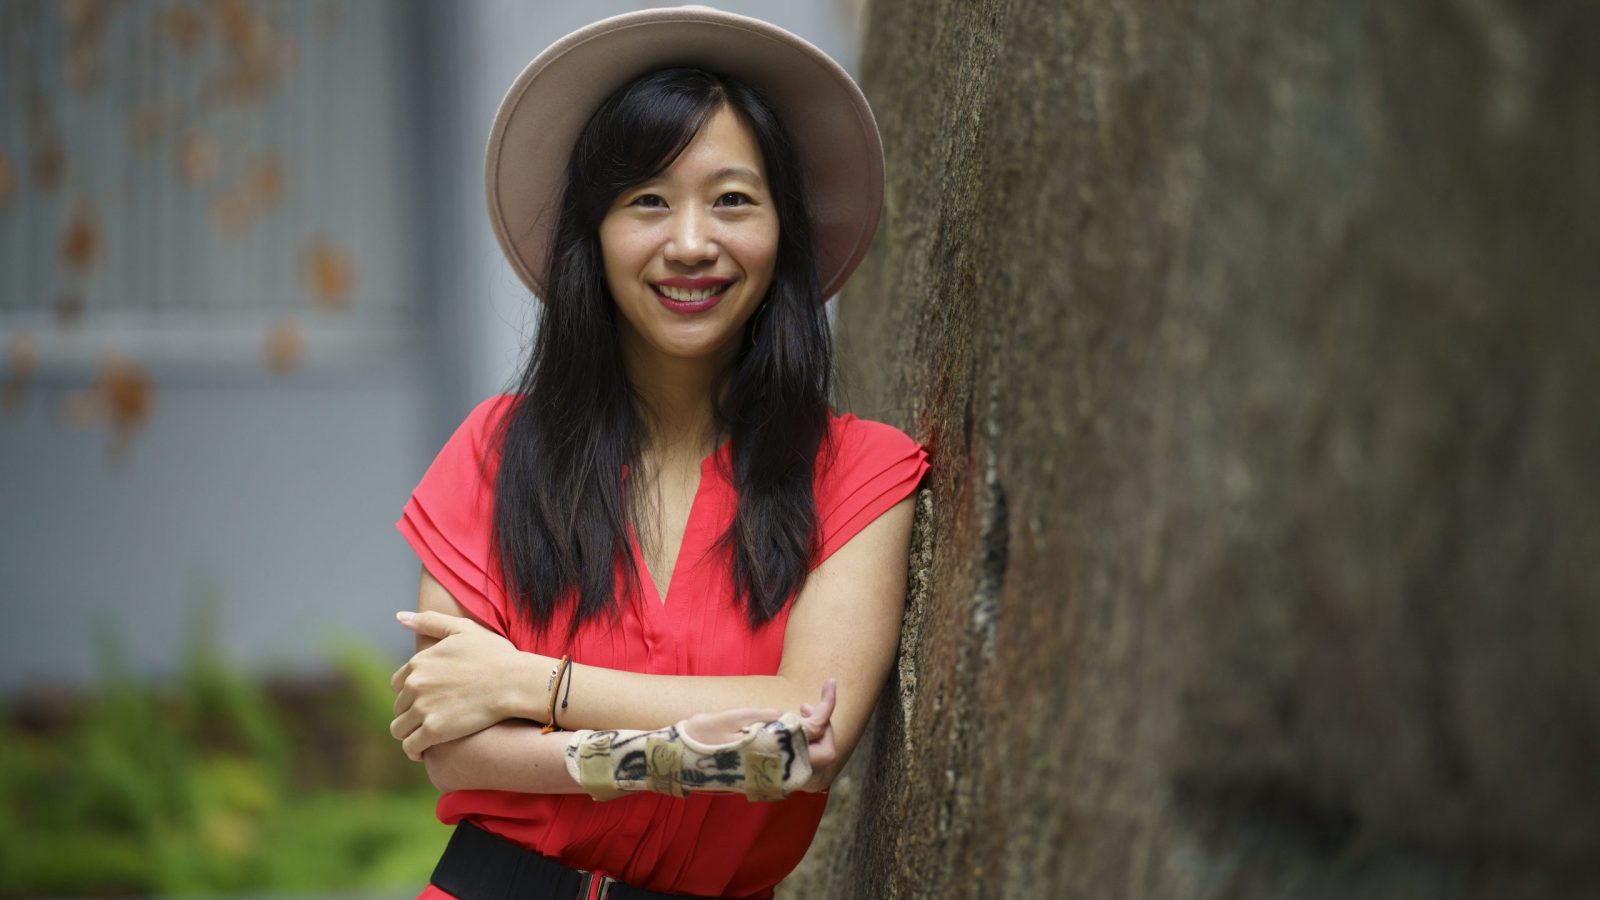 Tiffany Yu wears a hat and pink dress while leaning against a tree